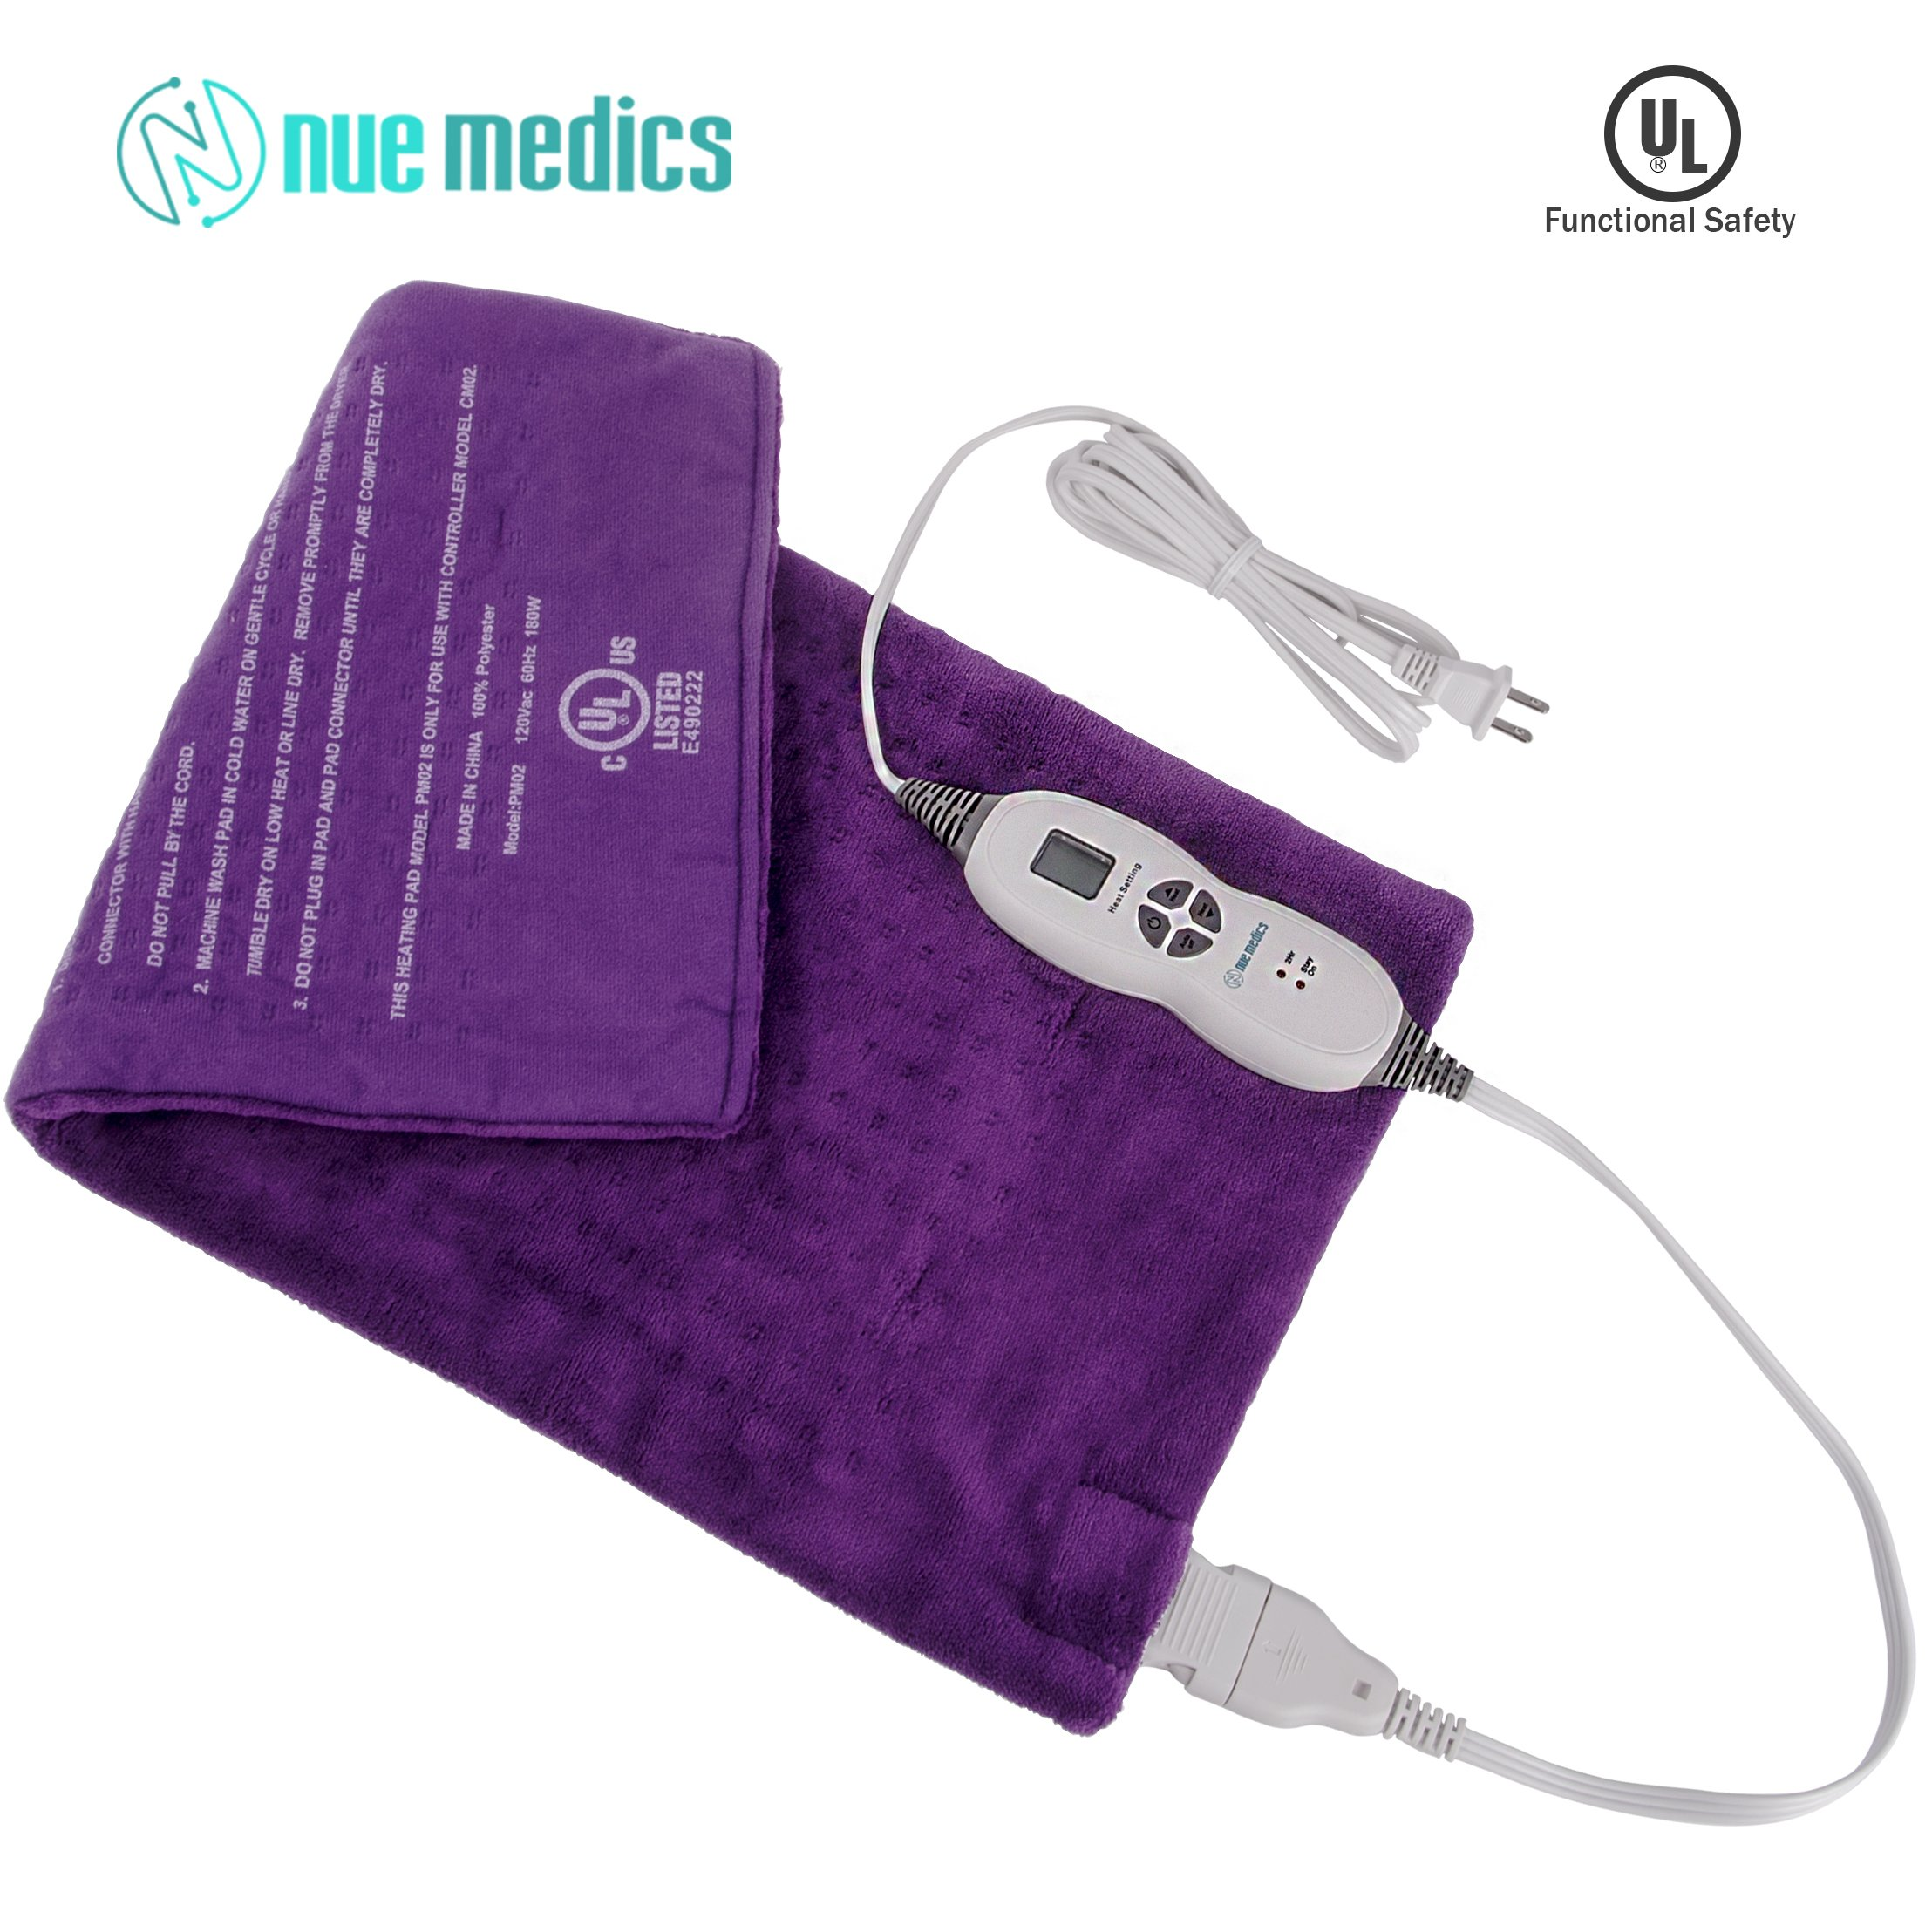 XL Heating Pad 12''X24'' Moist Or Dry Heat Therapy for Back Neck Shoulder Pain Relief and Muscle Cramps. 2 Hour Auto Shut-Off for Piece of Mind - Machine Washable Micro-Plush Fabric Purple